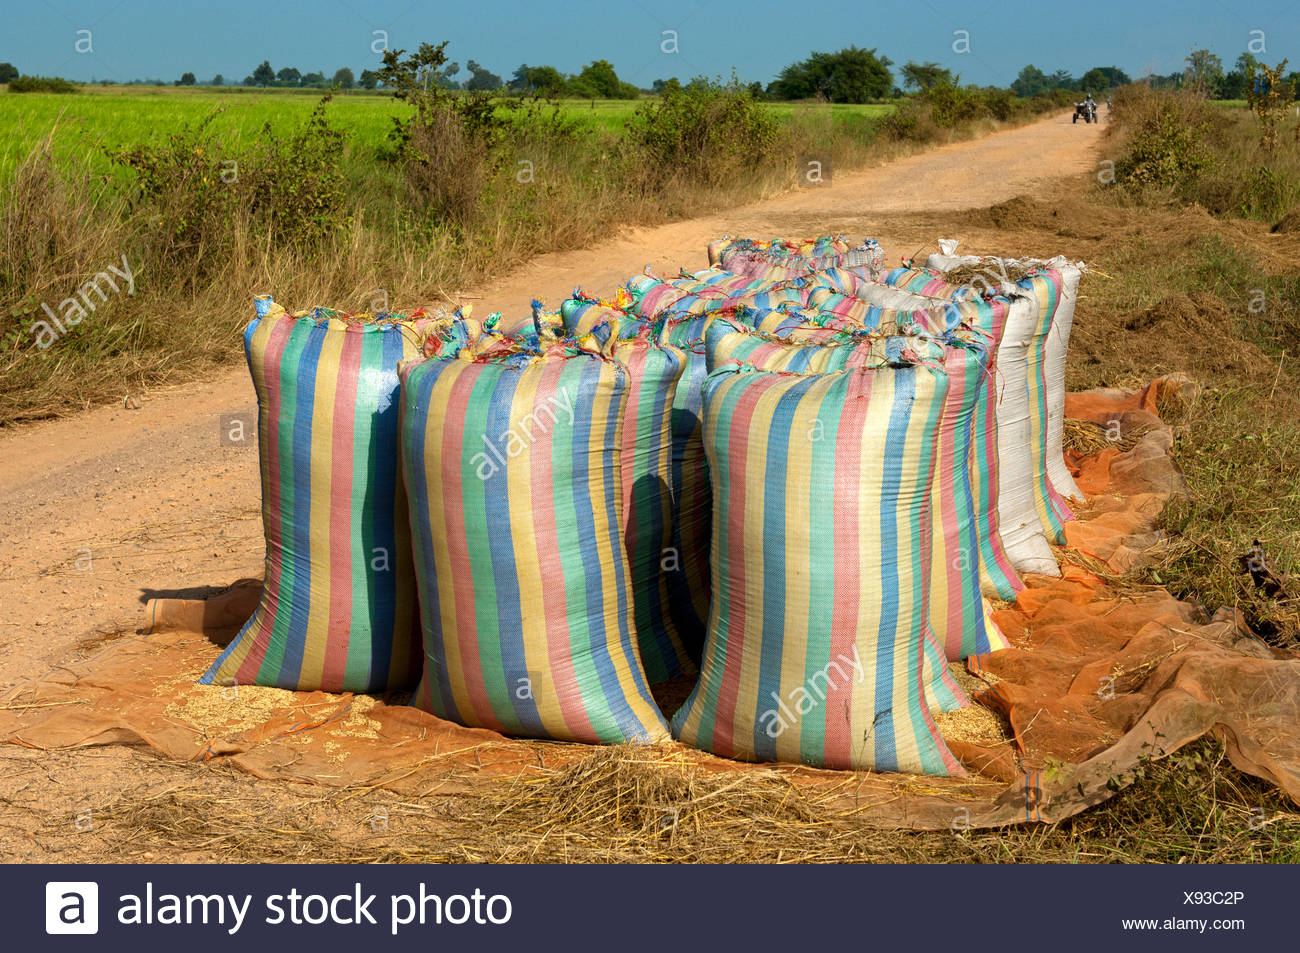 Bulging sacks of rice ready for collection on a dirt road, Battambang, Cambodia, Southeast Asia, Asia - Stock Image